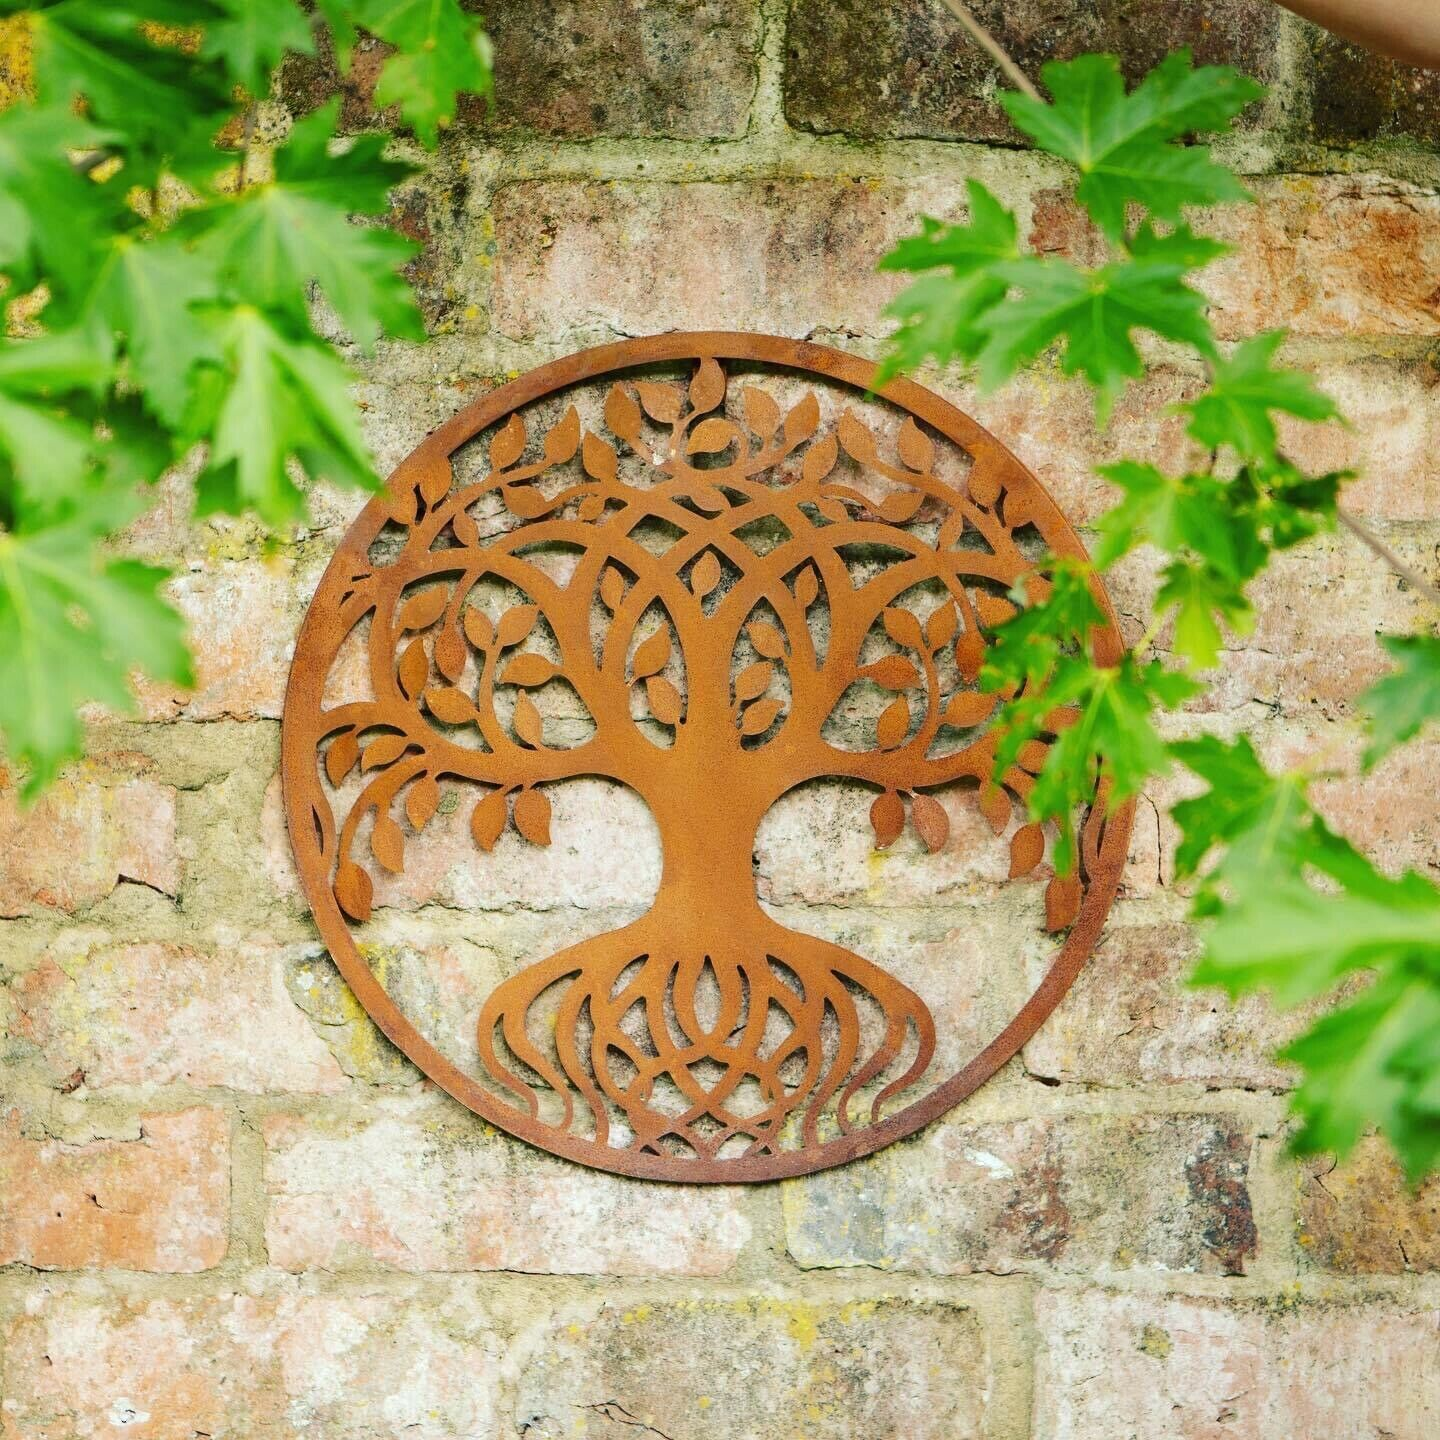 Tree Of Life Garden Wall Fence Plaque, 40cms, Rusted Aged Metal